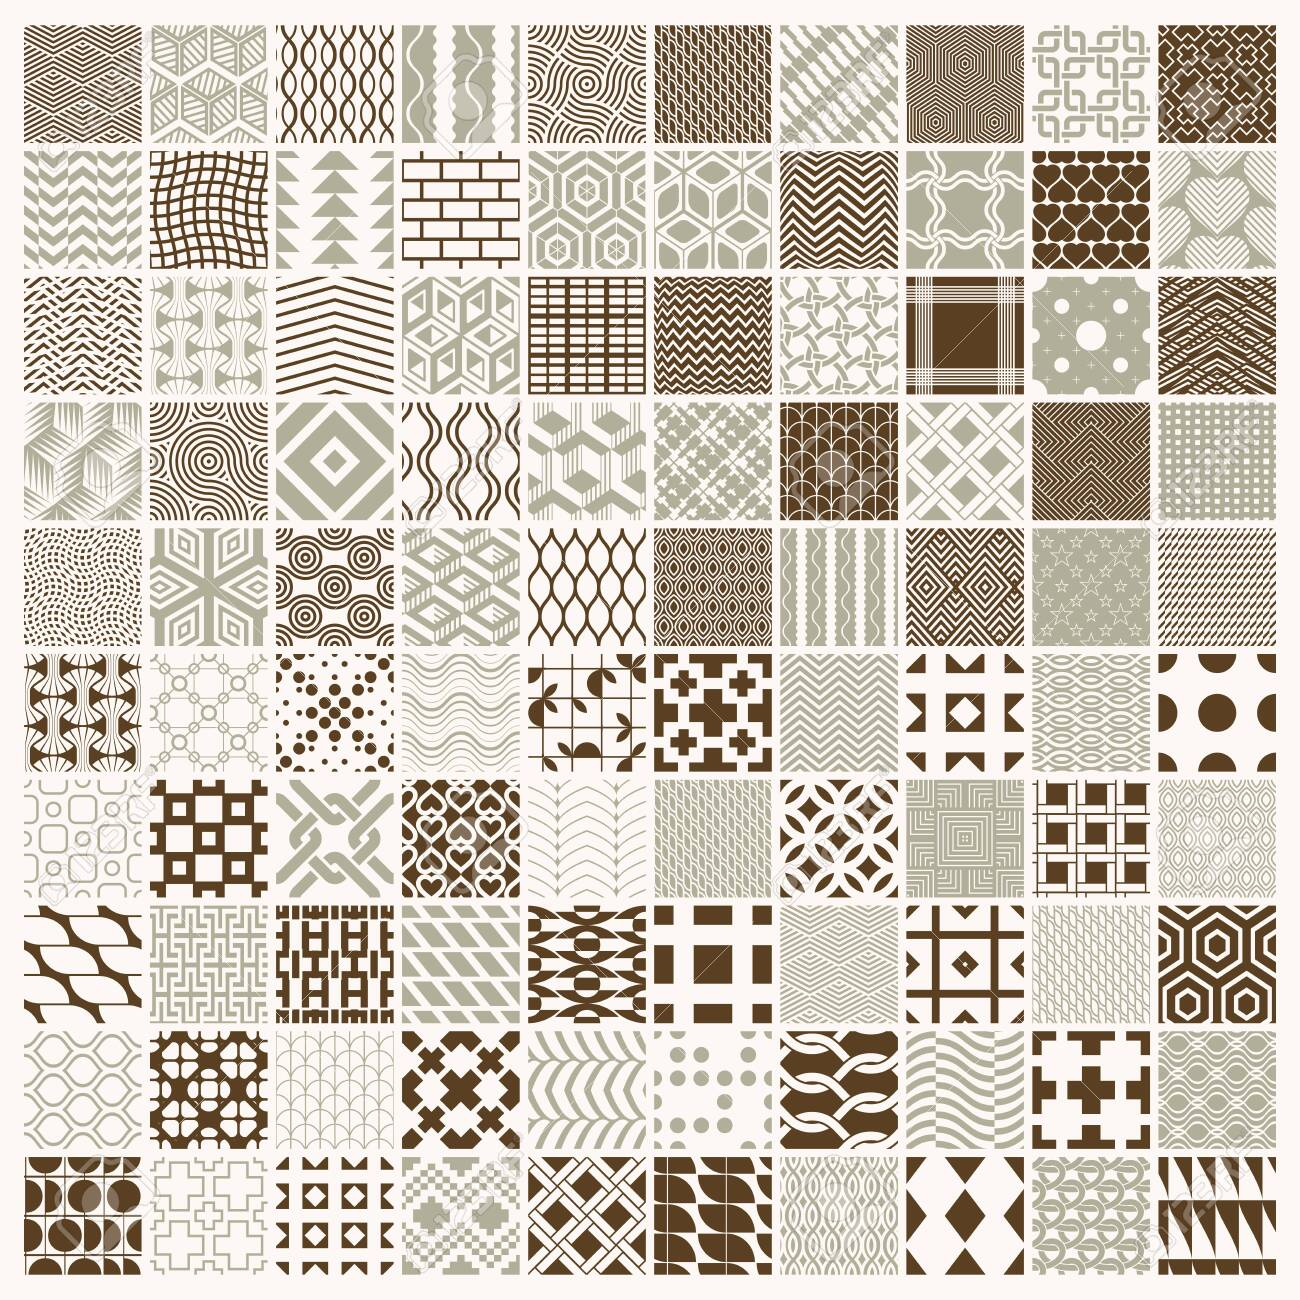 Vector graphic vintage textures created with squares, rhombuses and other geometric shapes. 100 seamless patterns collection best for use in textiles design. - 126515515